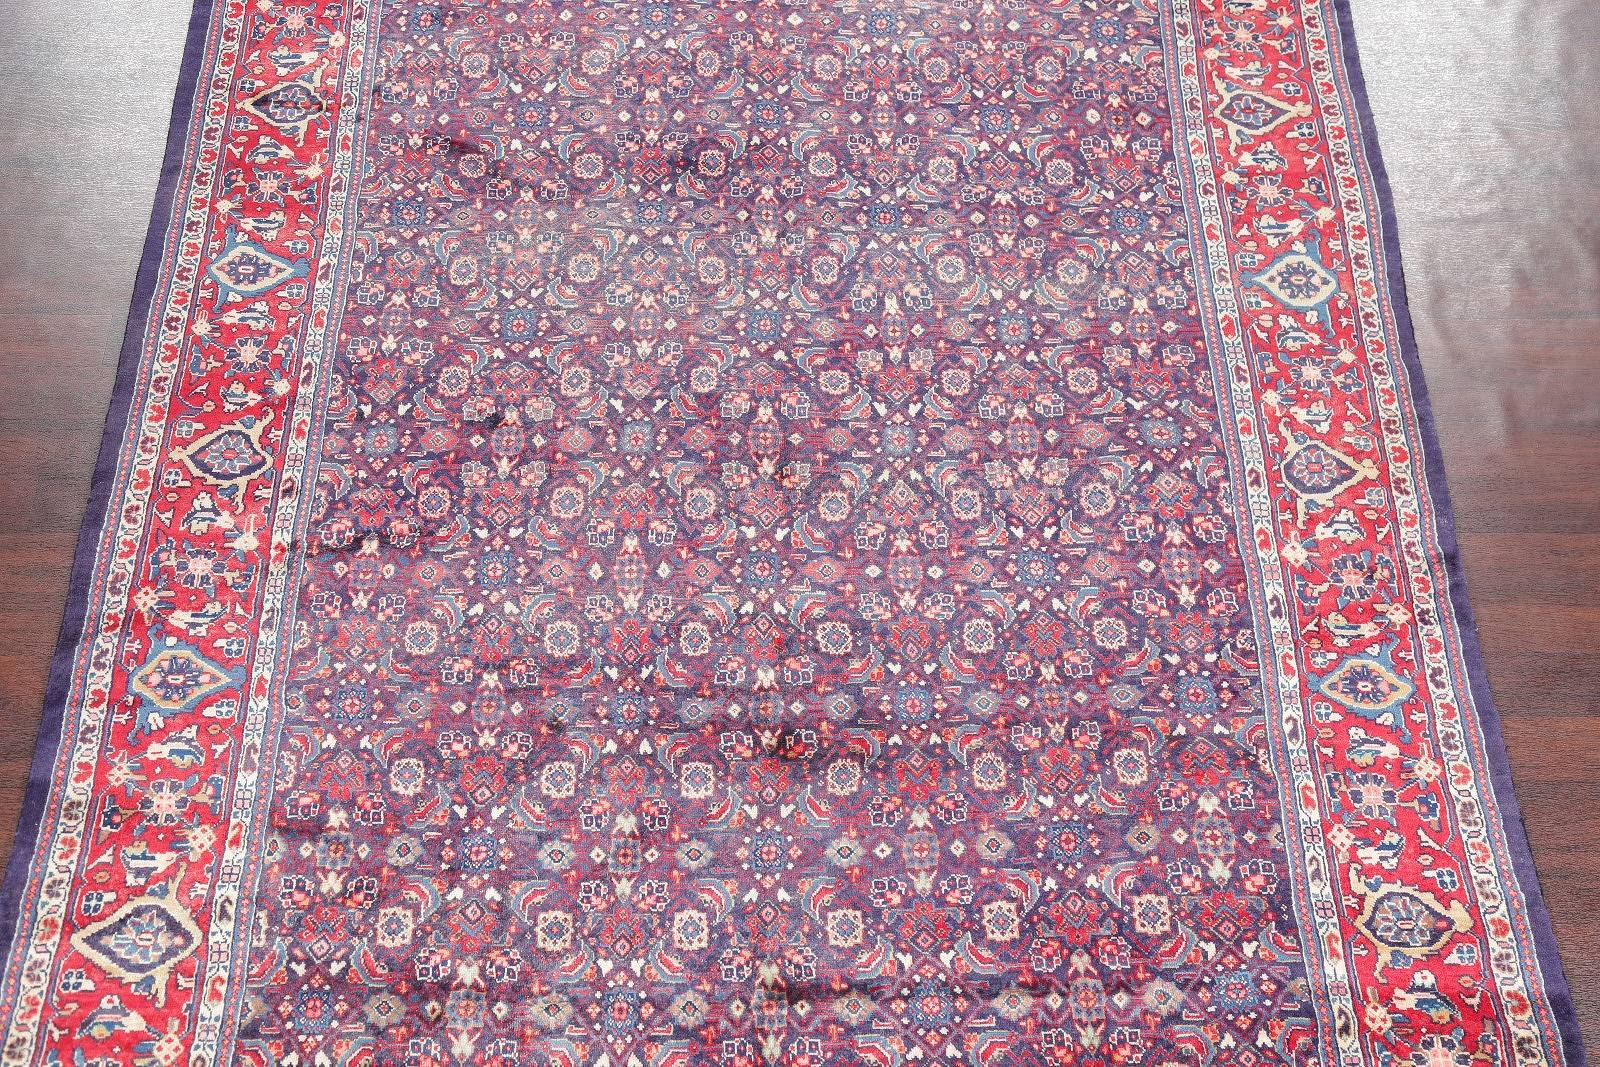 All-Over Floral Blue 8x12 Sarouk Persian Area Rug